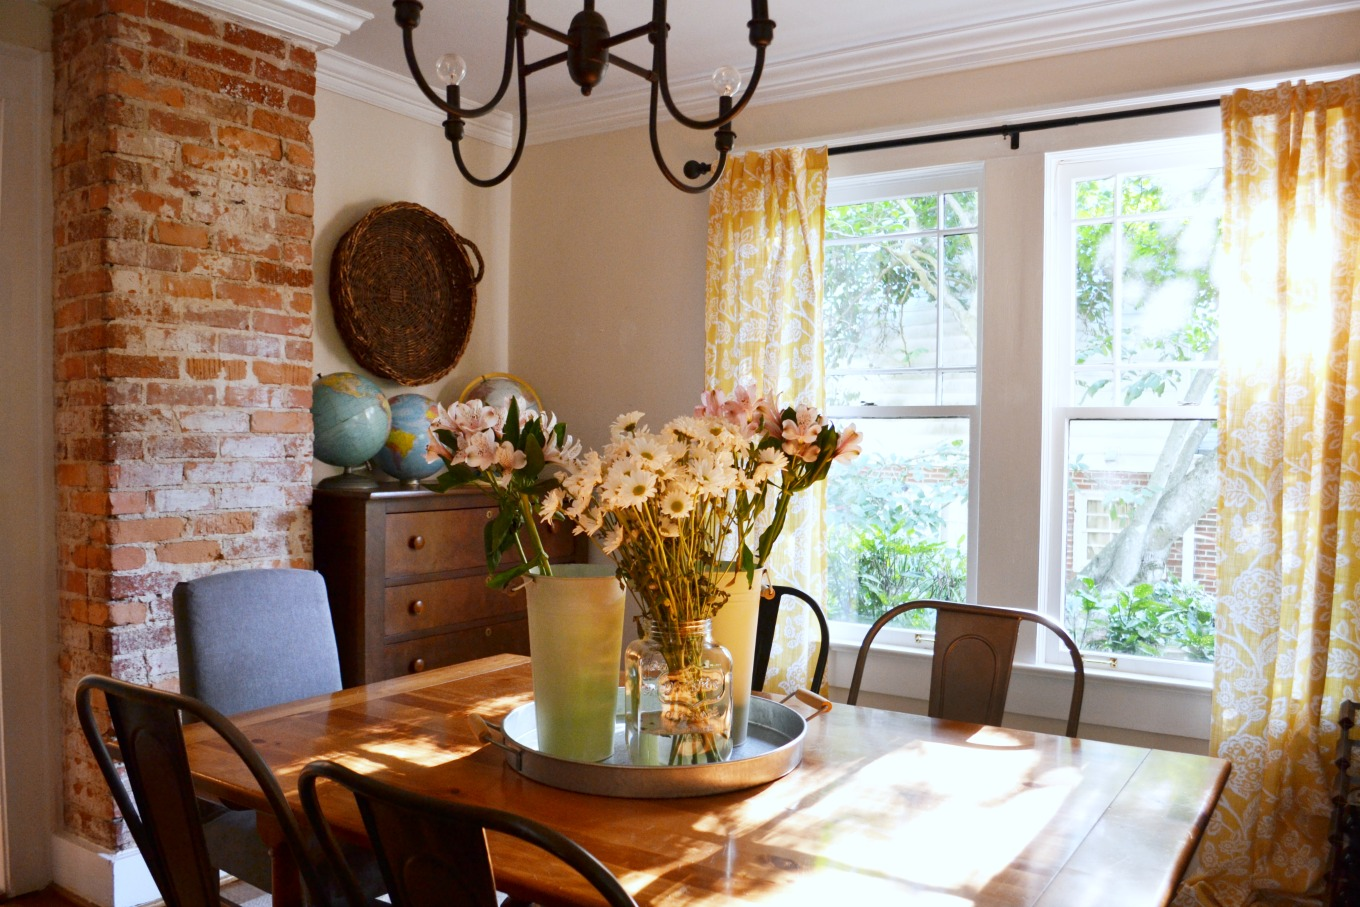 Dining room with fresh flowers to brighten decor for spring - thediybungalow.com